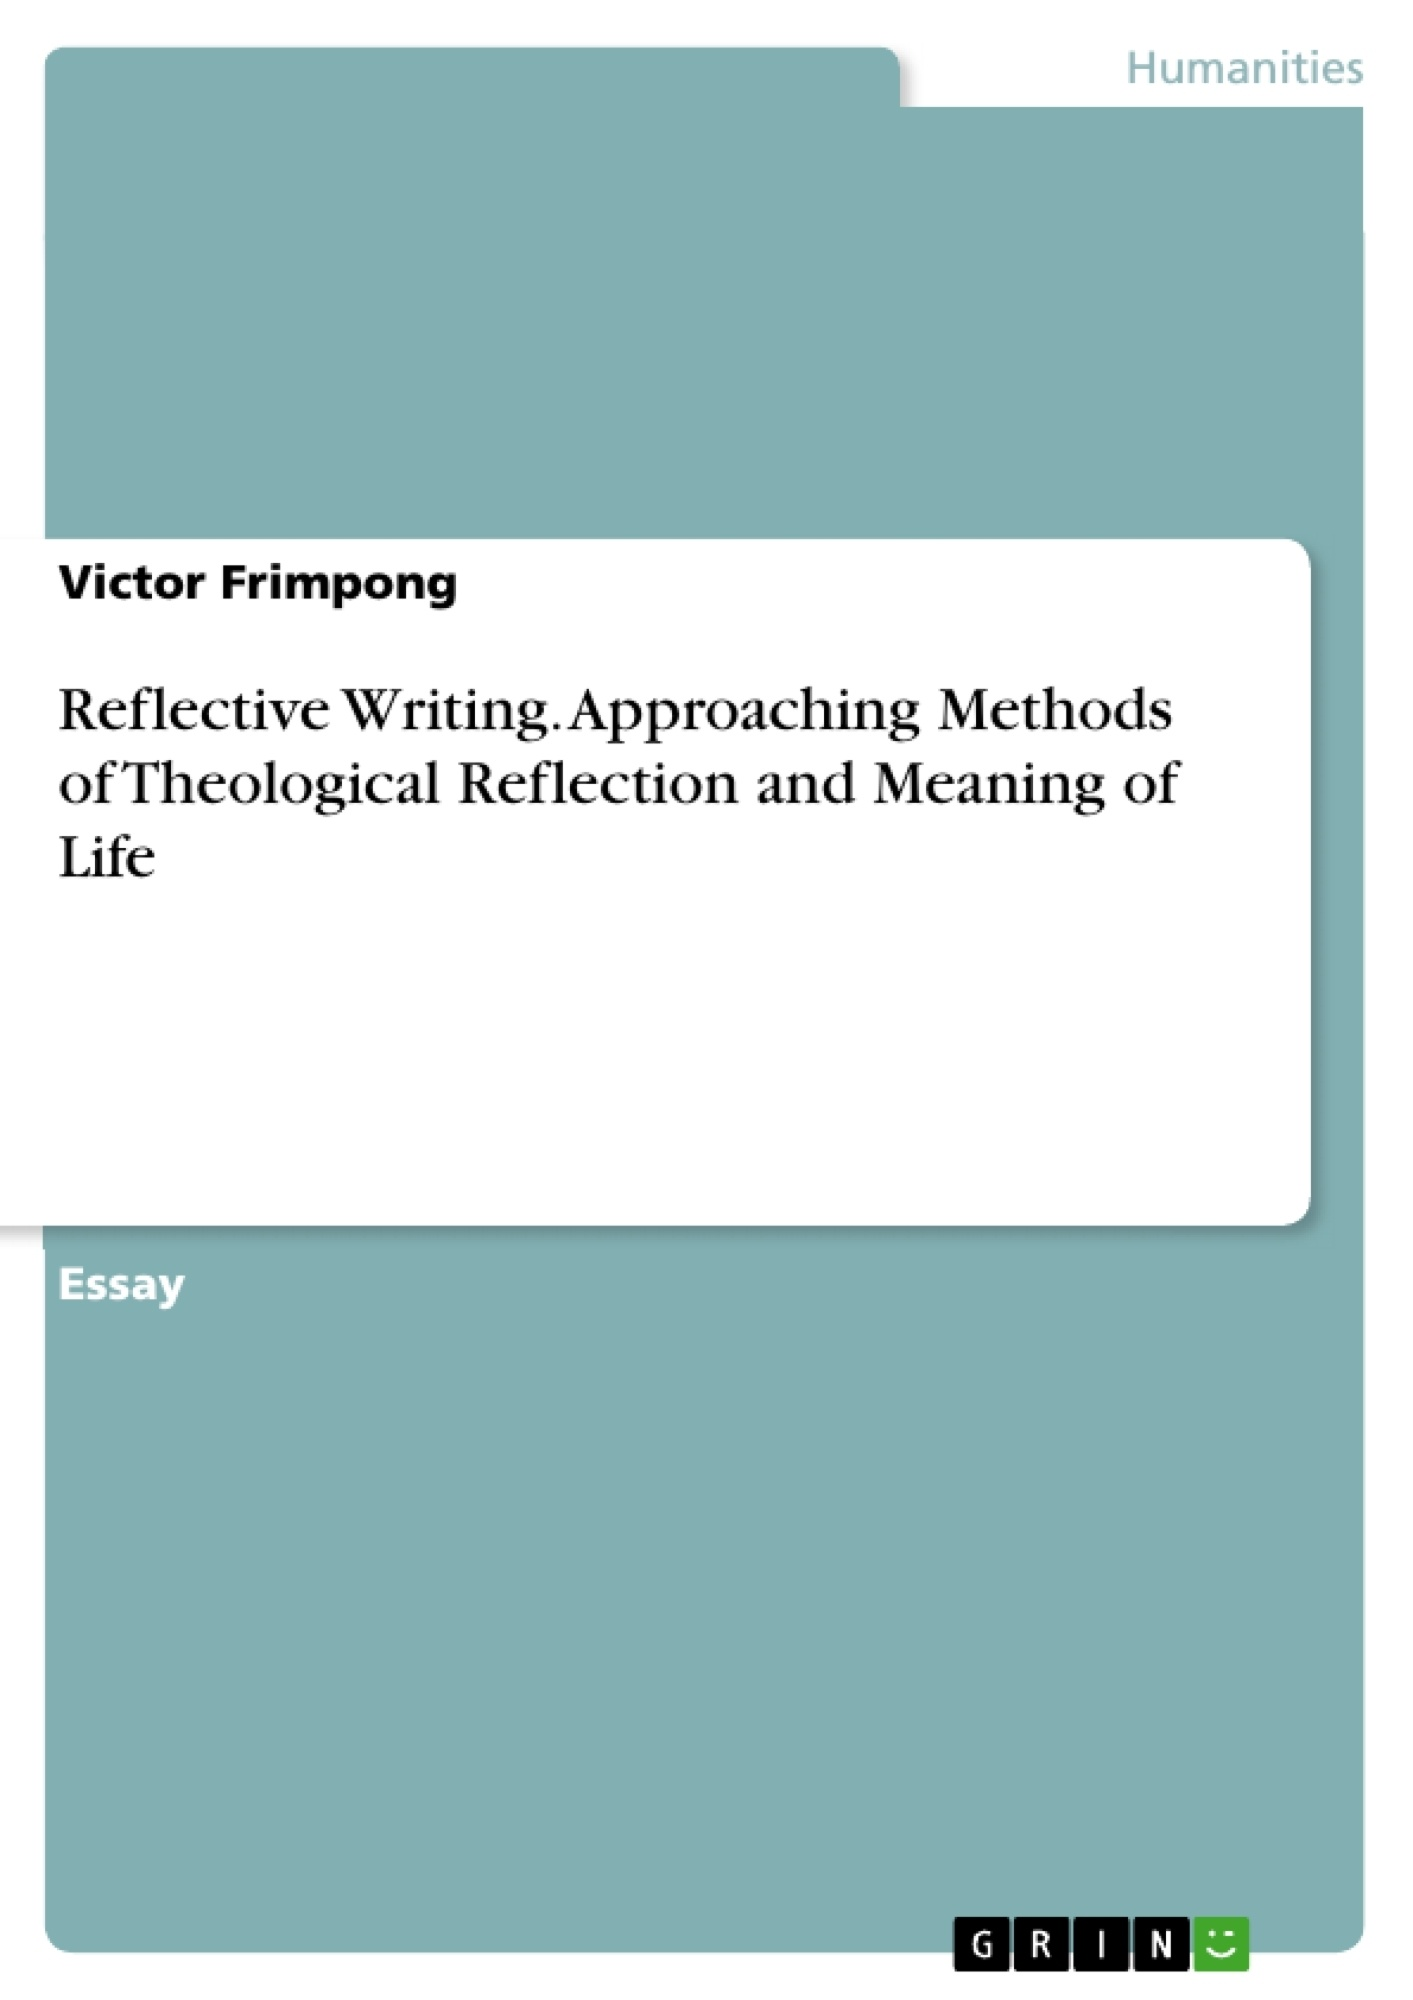 Title: Reflective Writing. Approaching Methods of Theological Reflection and Meaning of Life